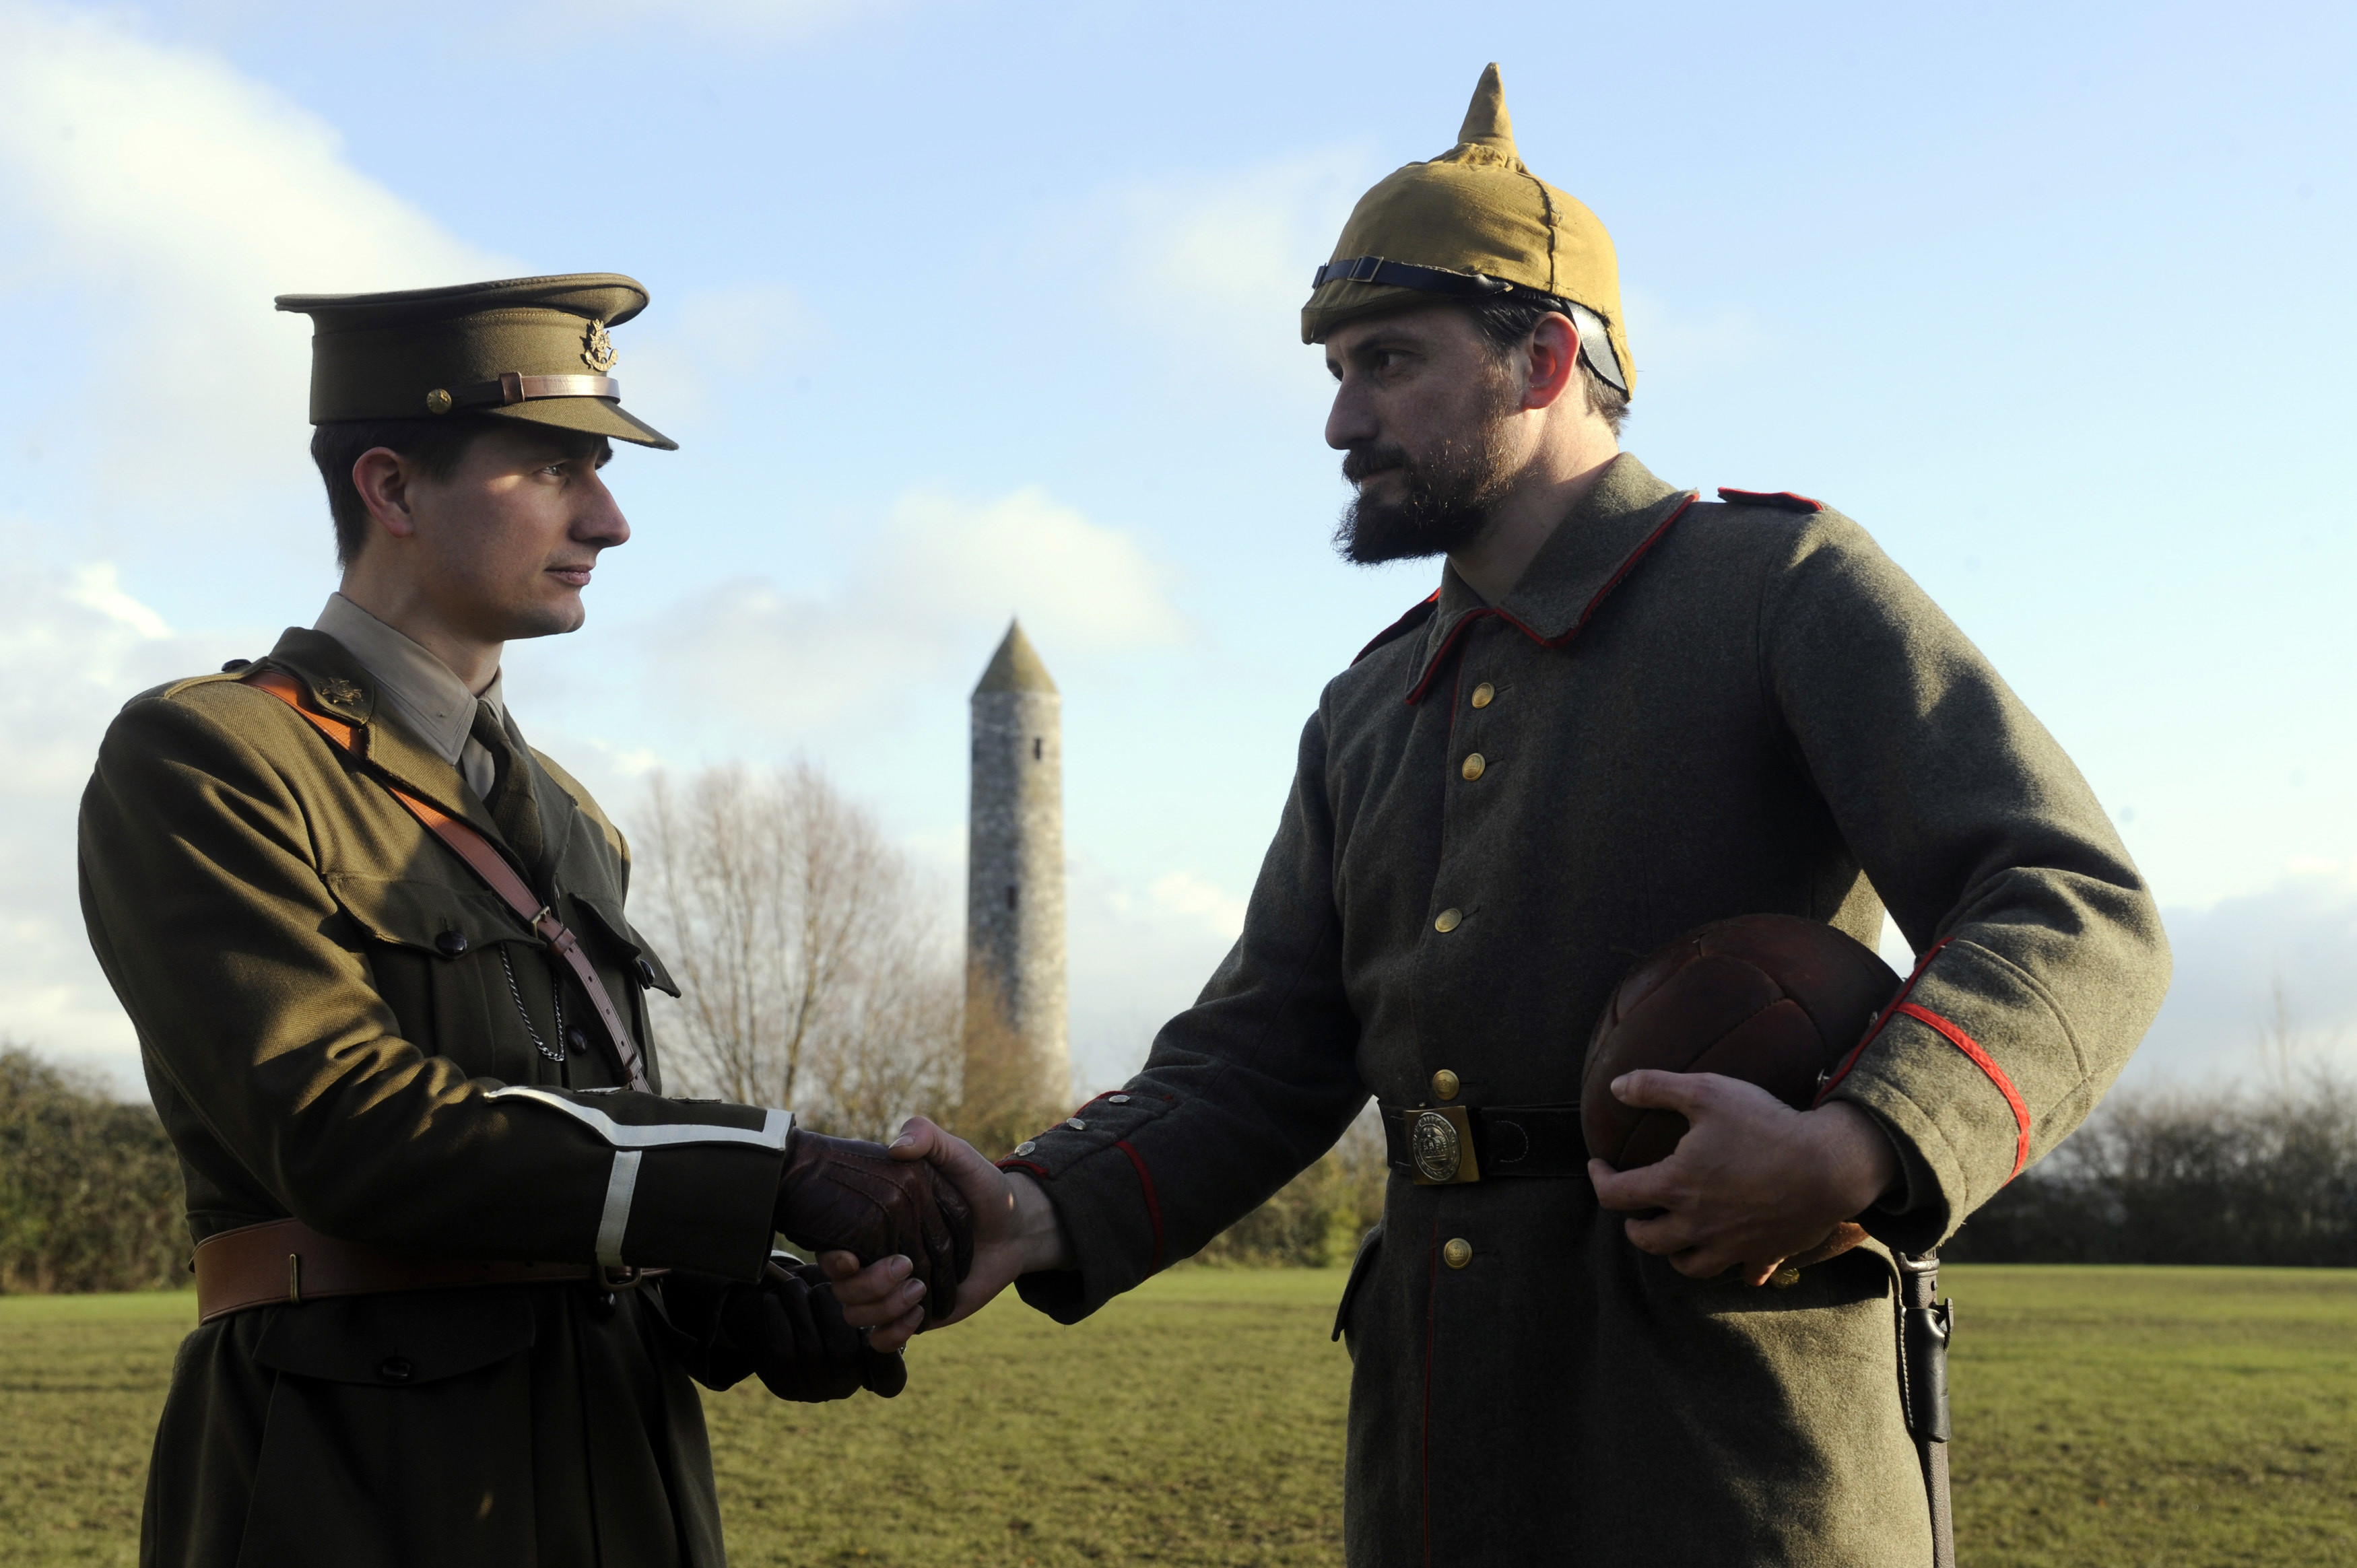 A centenary re-enactment of the football match between the German and Allied troops during the Christmas Truce of 1914.